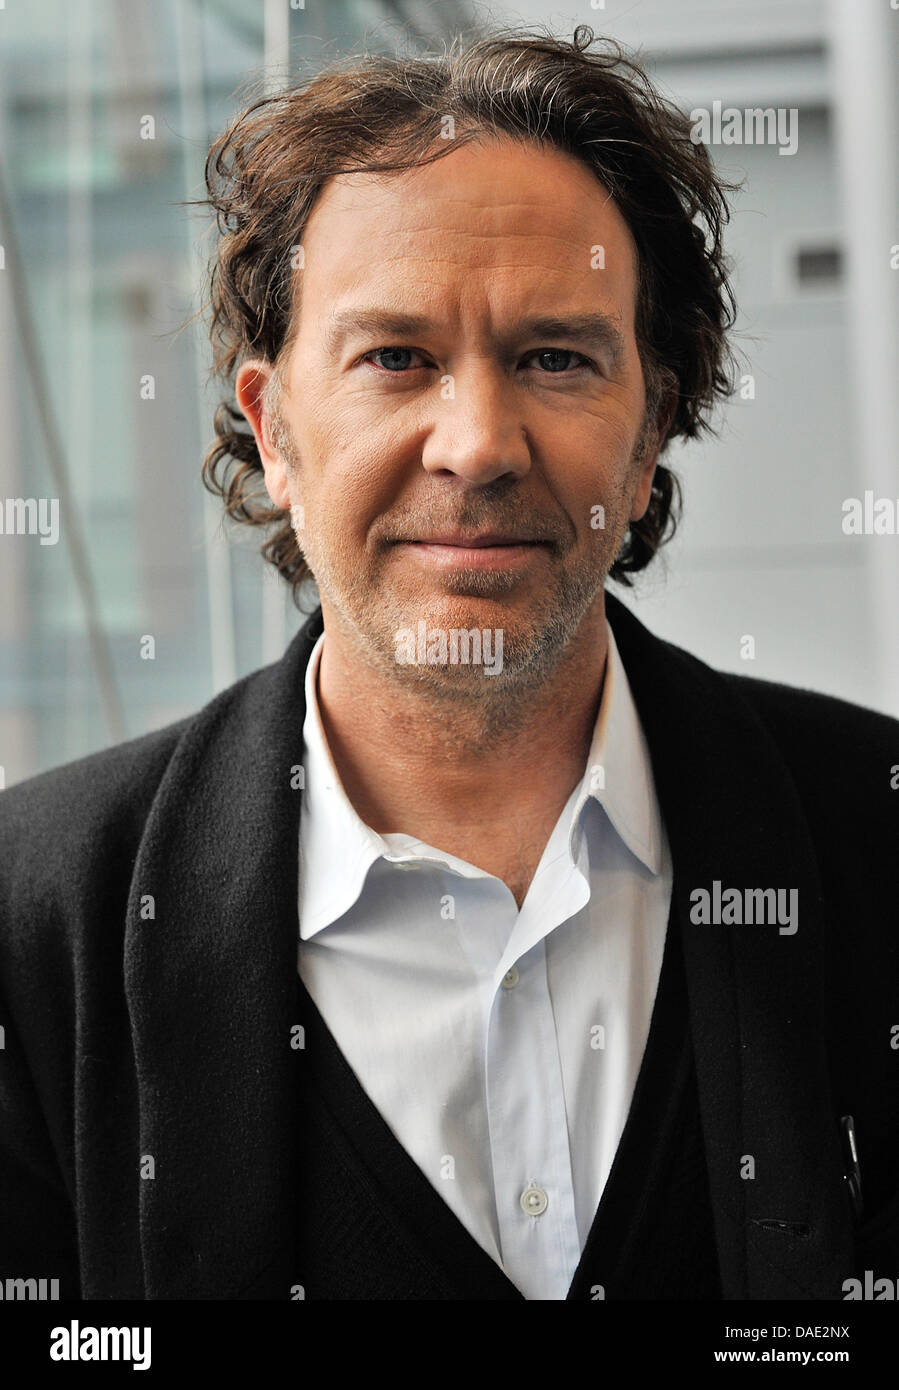 US actor Timothy Hutton presents the TV series 'Leverage' in Cologne, Germany, 10 November 2011. Hutton - Stock Image